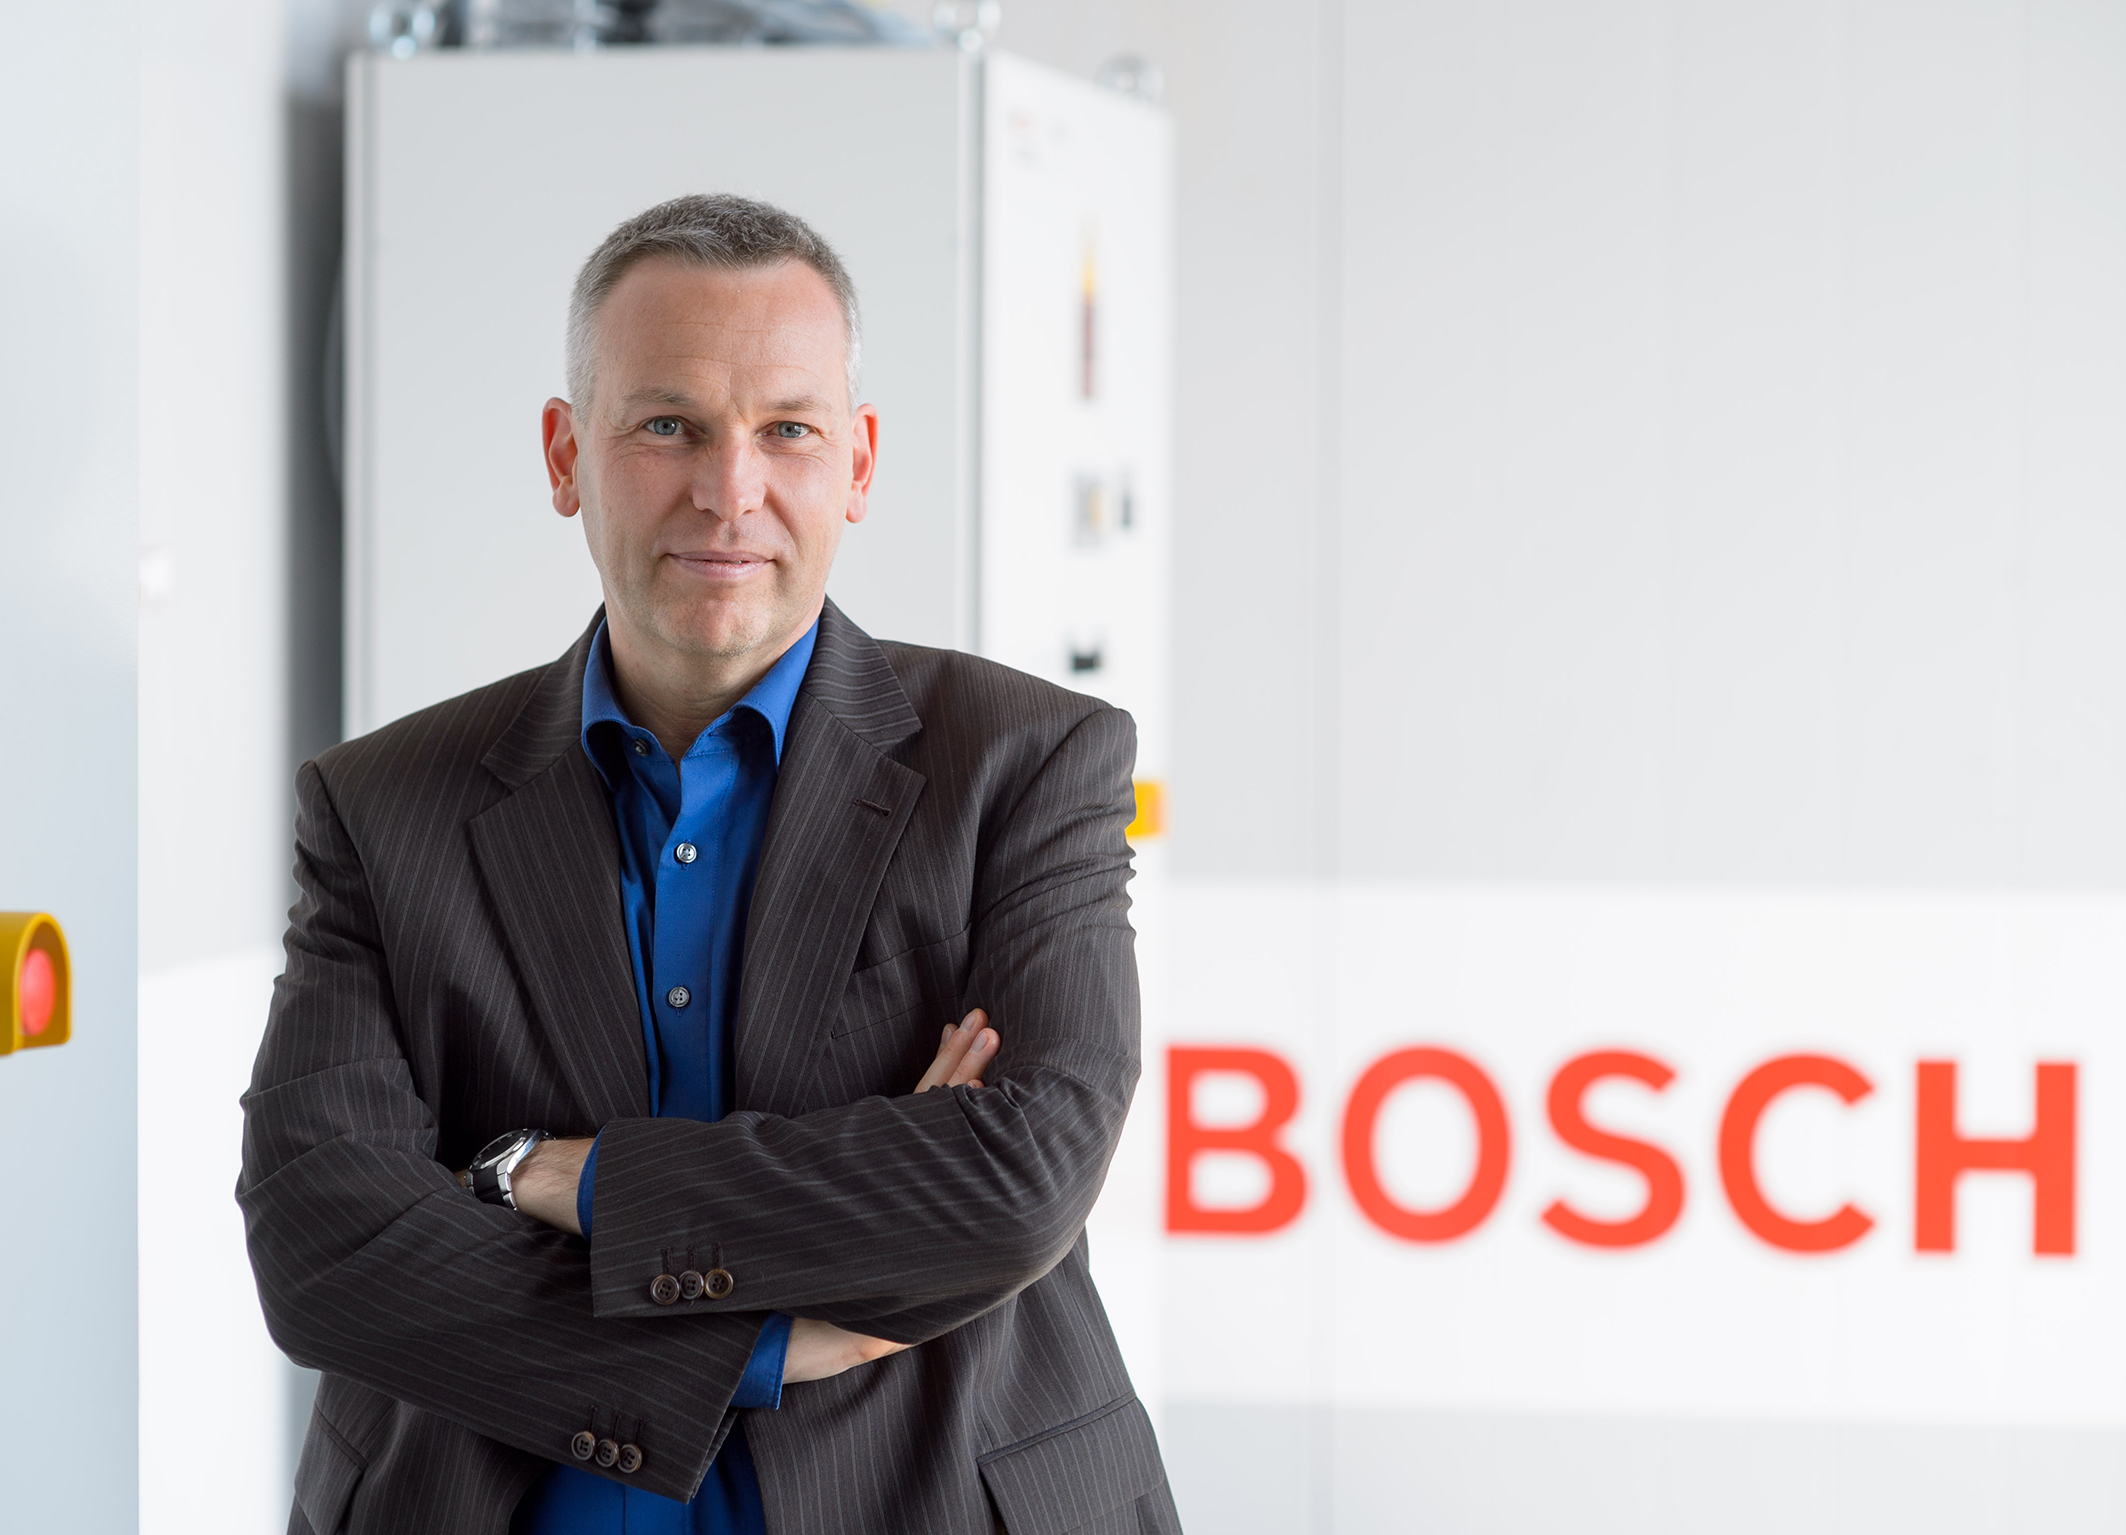 Bosch research: Dr. Thorsten Ochs